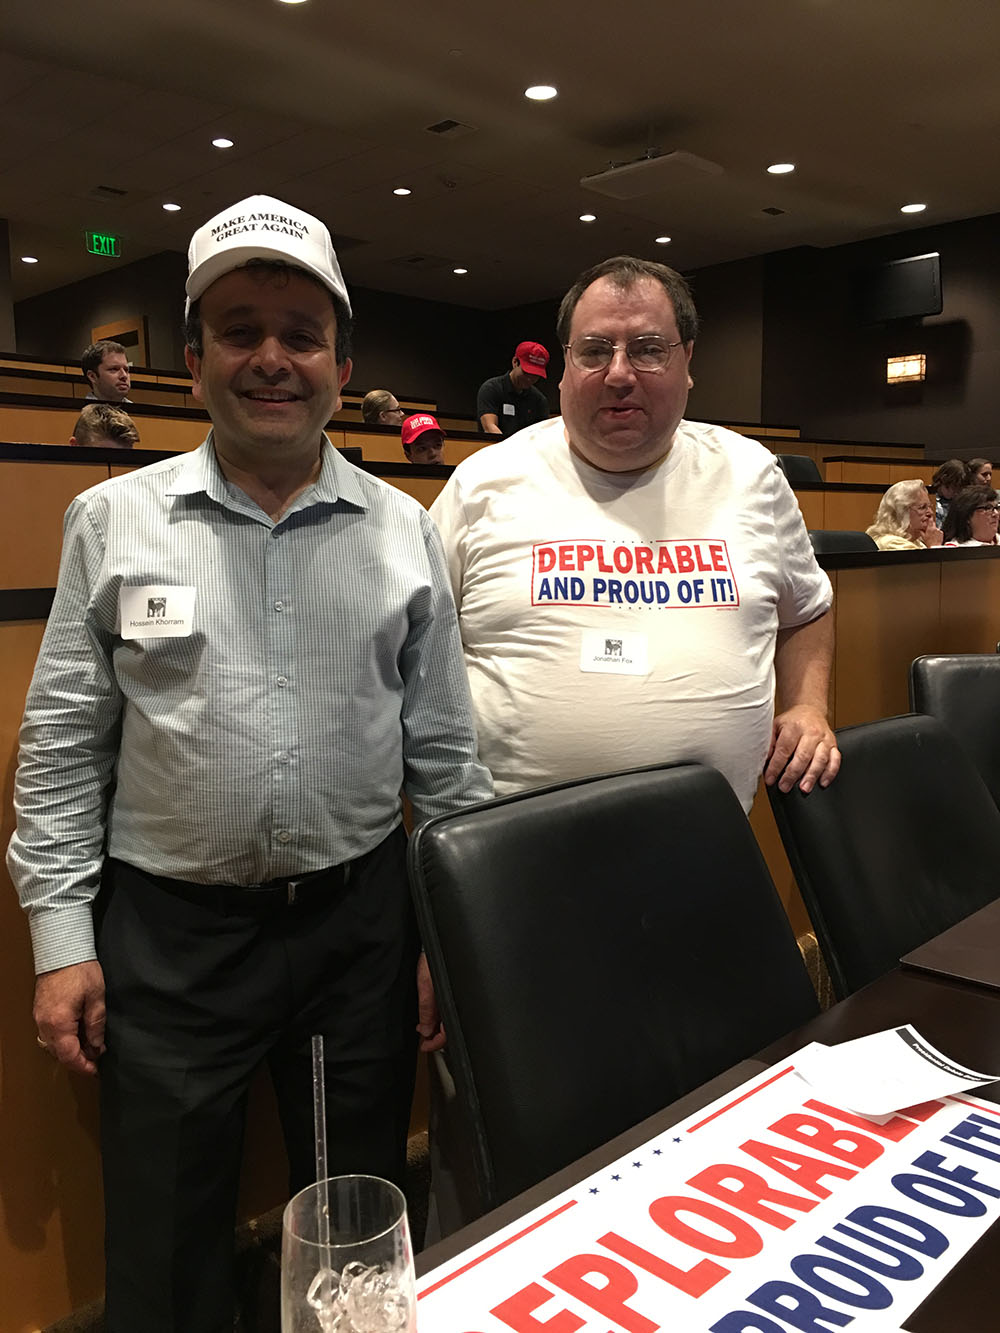 """Seattle, Washington: September 26 2016: Hosssein Khorram (L)a fundraiser for Trump Victory Inc poses for a portrait with a Trump supporter at the Seattle Republican viewing party for the first presidential debate. The man on the right is wearing a shirt that references a Hillary Clinton comment in September, """"you can put half of Trump supporters in what I call the basket of deplorables. The racists, sexists, homophobic, Islamaphobic."""" Photo: Hebah Fisher"""